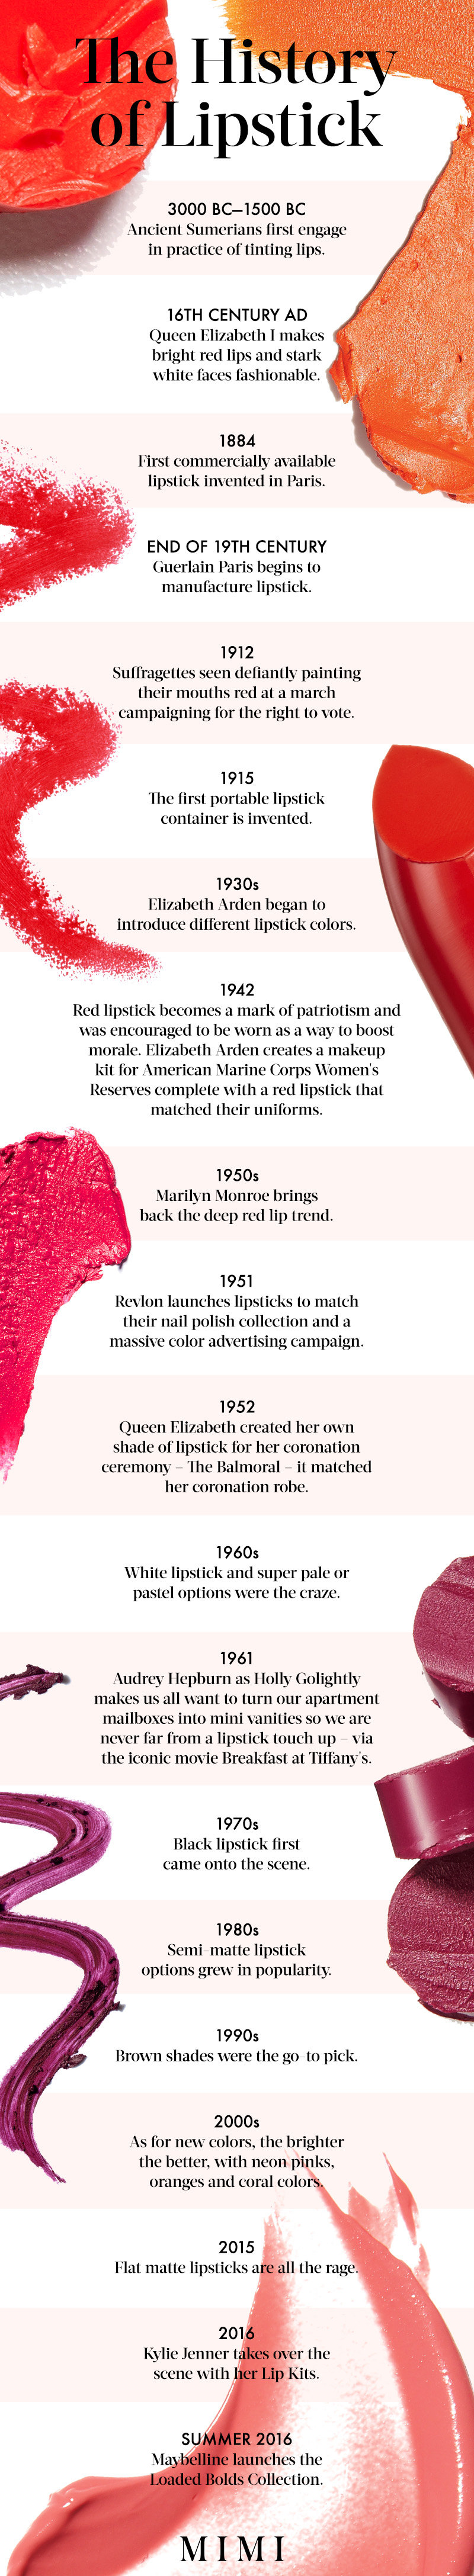 MIMI: History of Lipstick REVISE